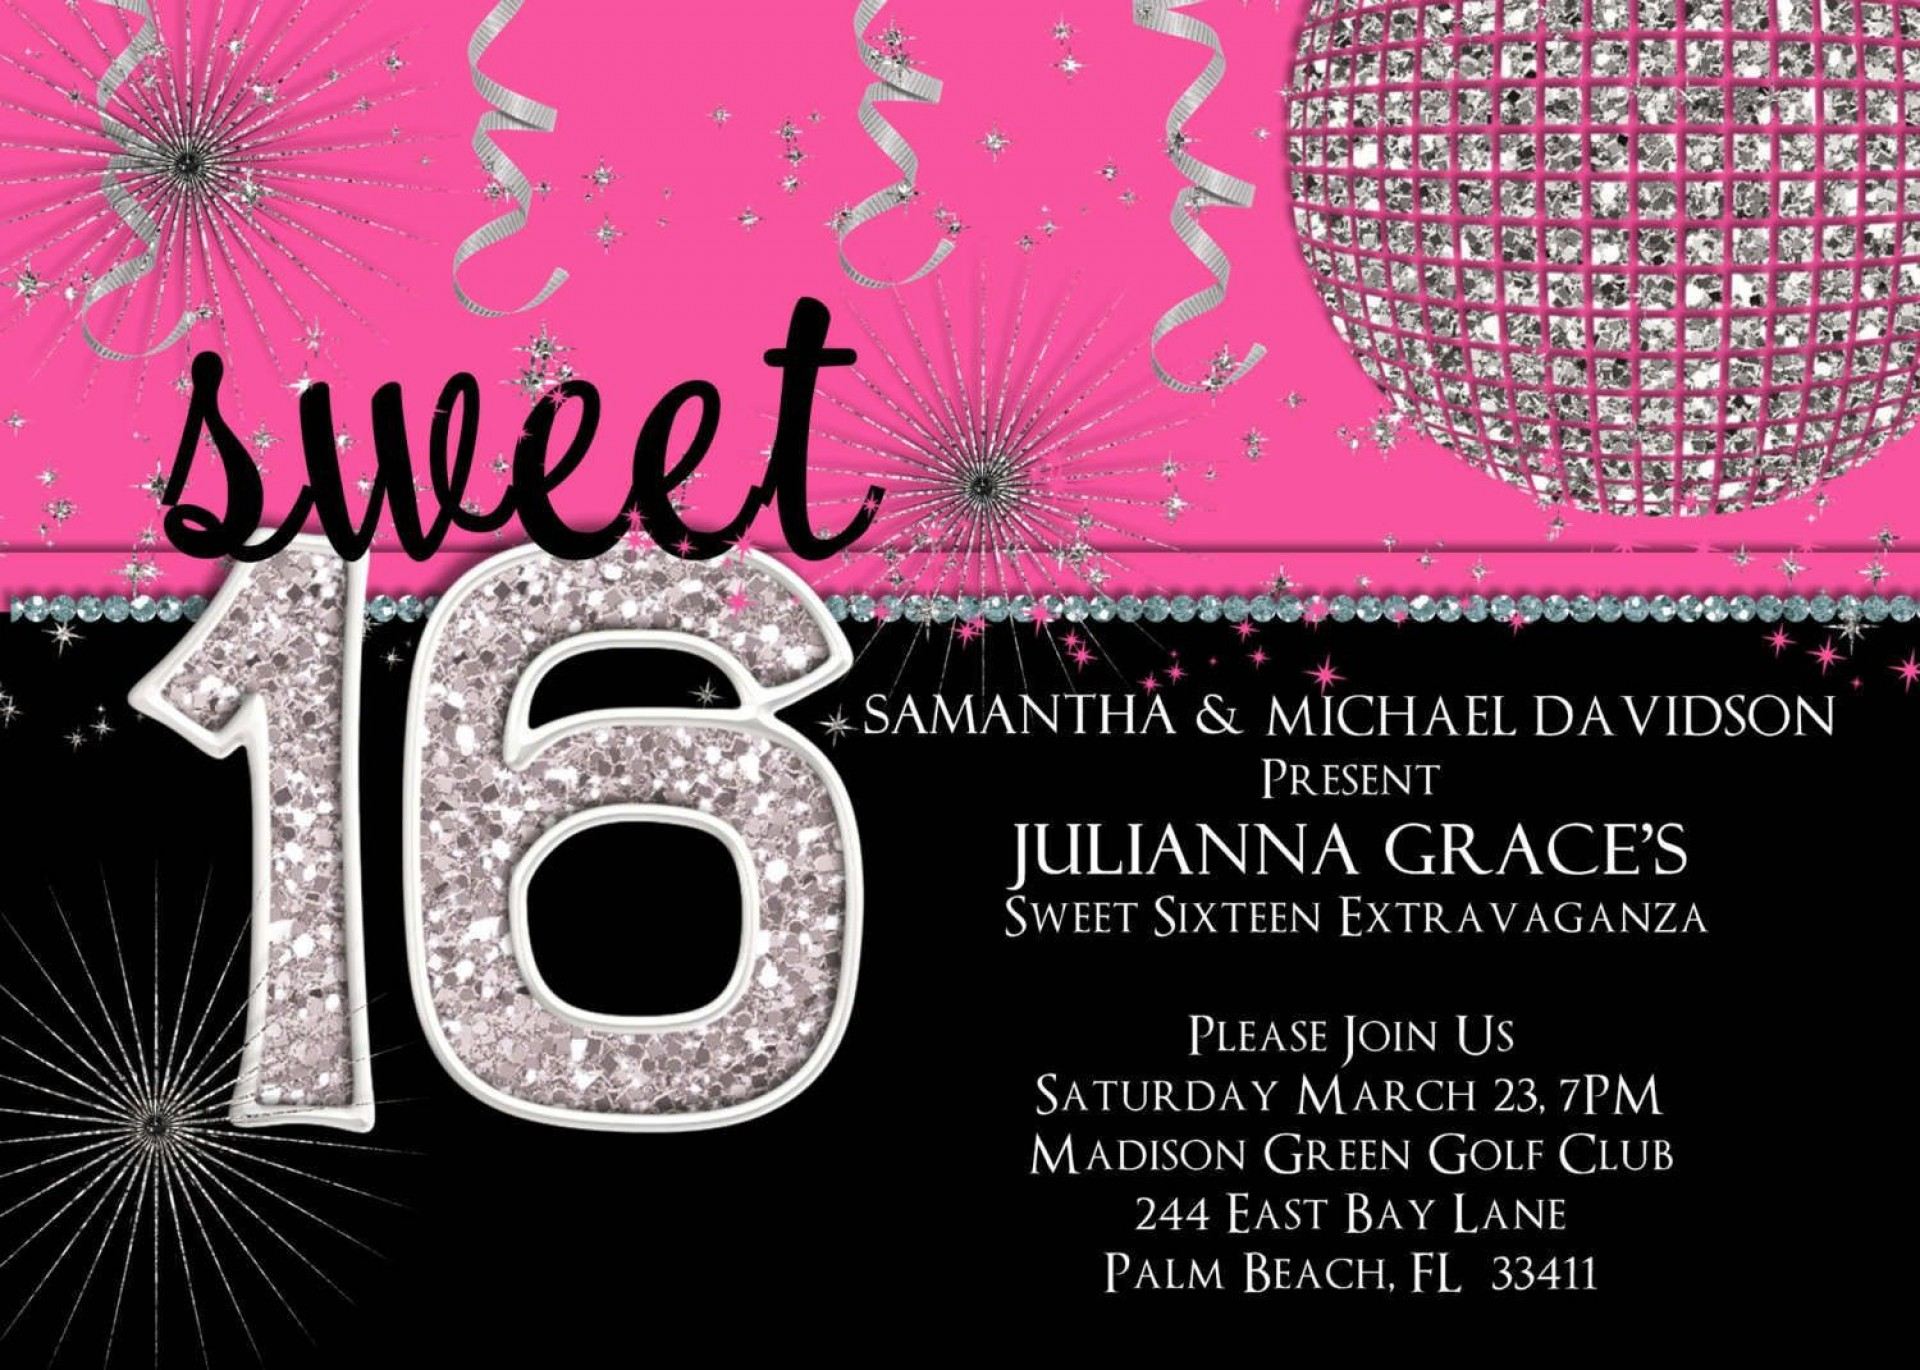 000 Magnificent Sweet 16 Invite Template Example  Templates Surprise Party Invitation Birthday Free 16th1920